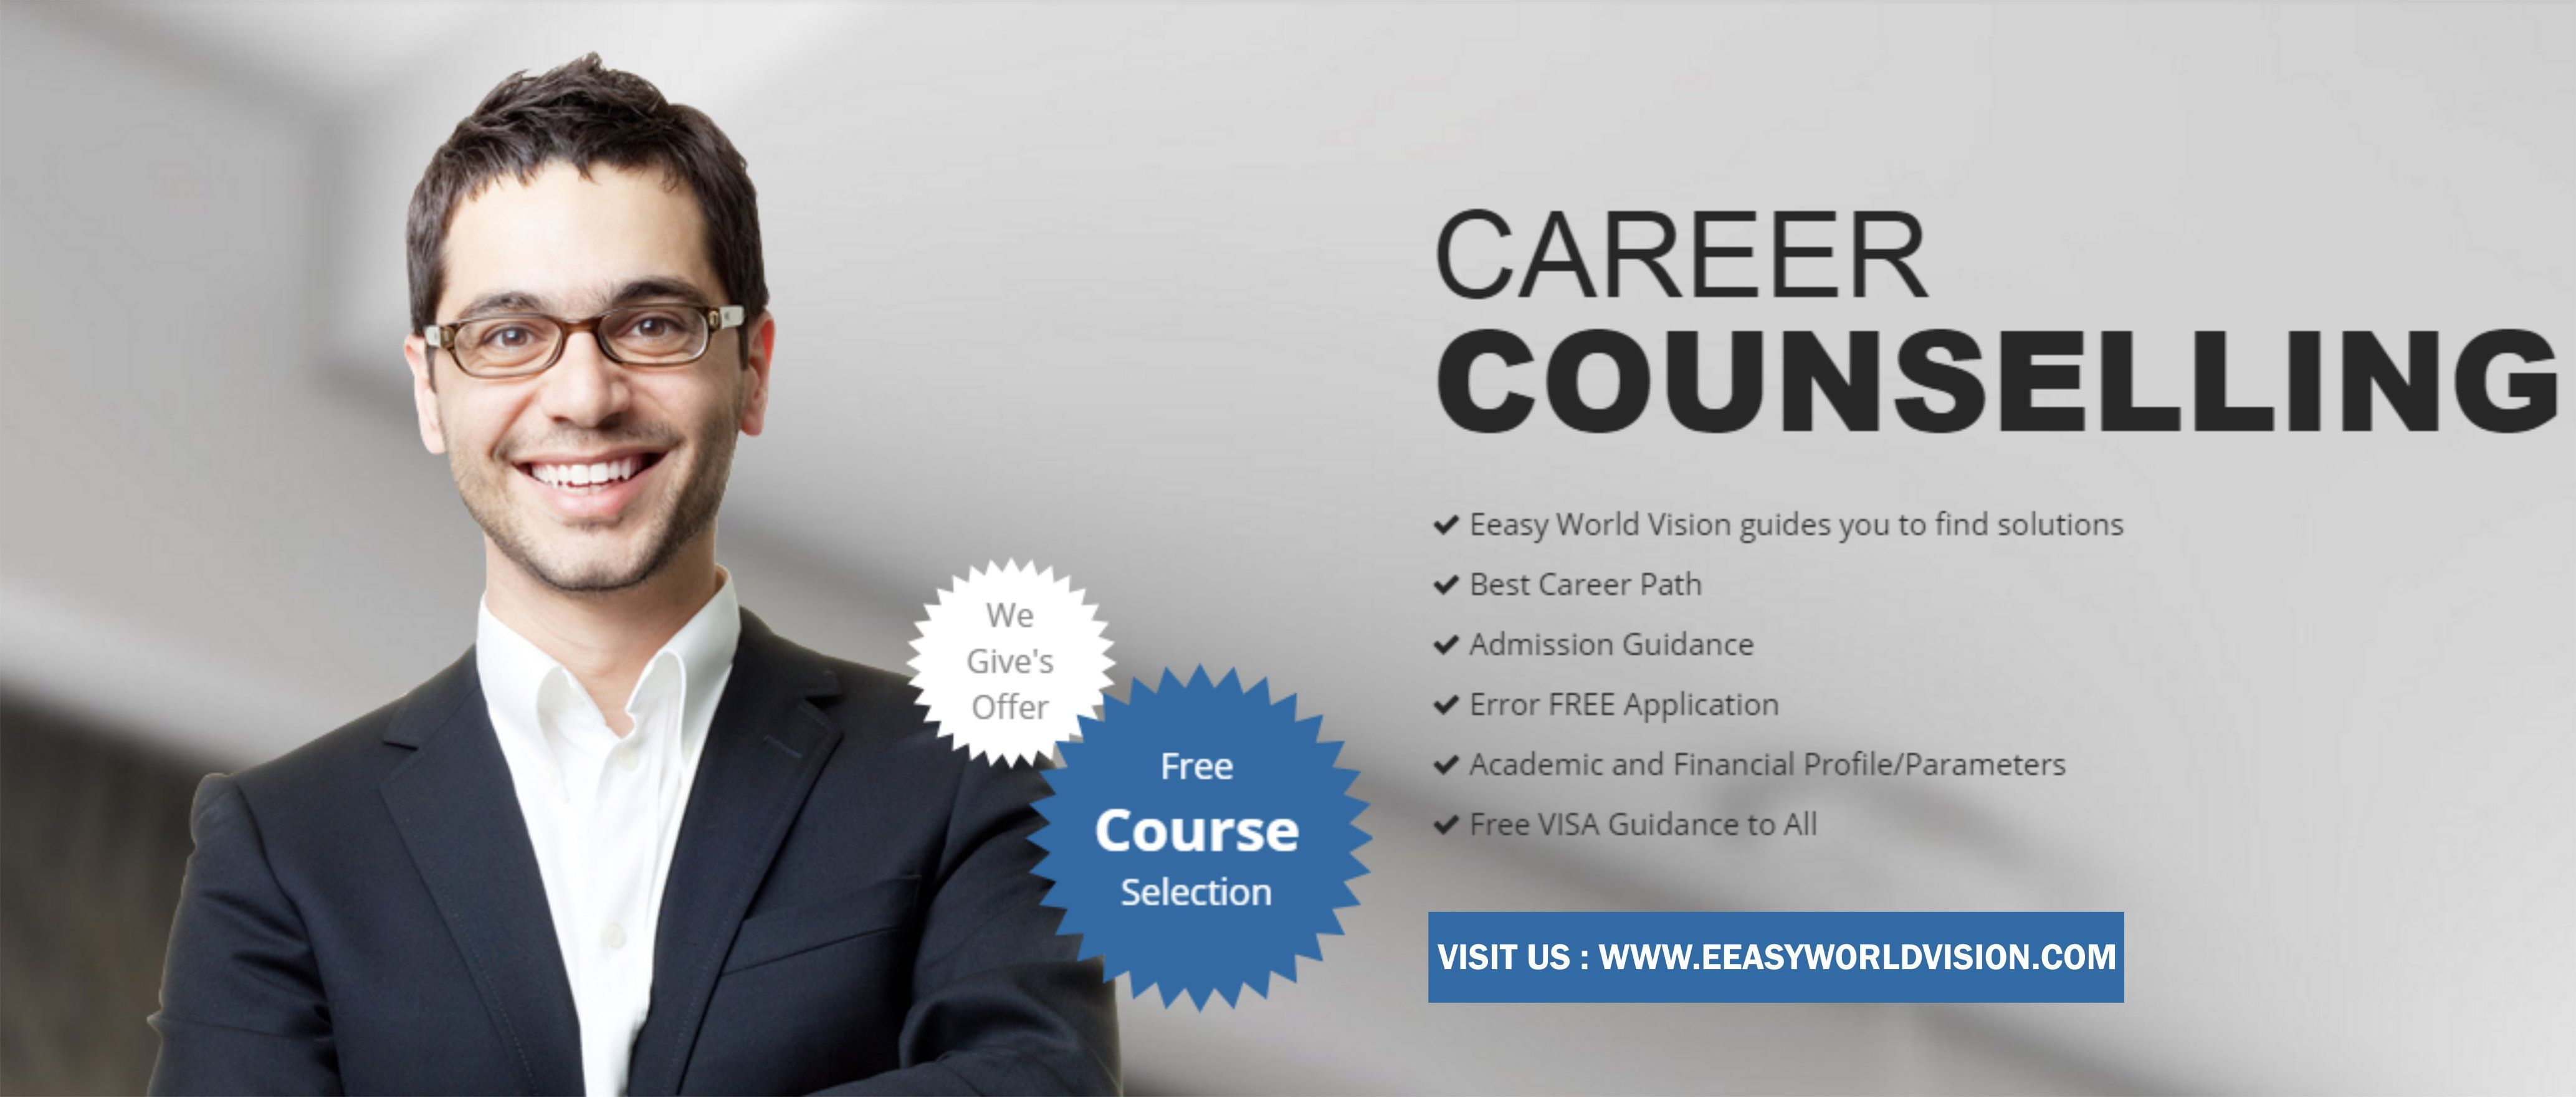 Free Study Career Counselling By Our Expert Call For Appointment 88662 44440 Career Counseling Counseling World Vision